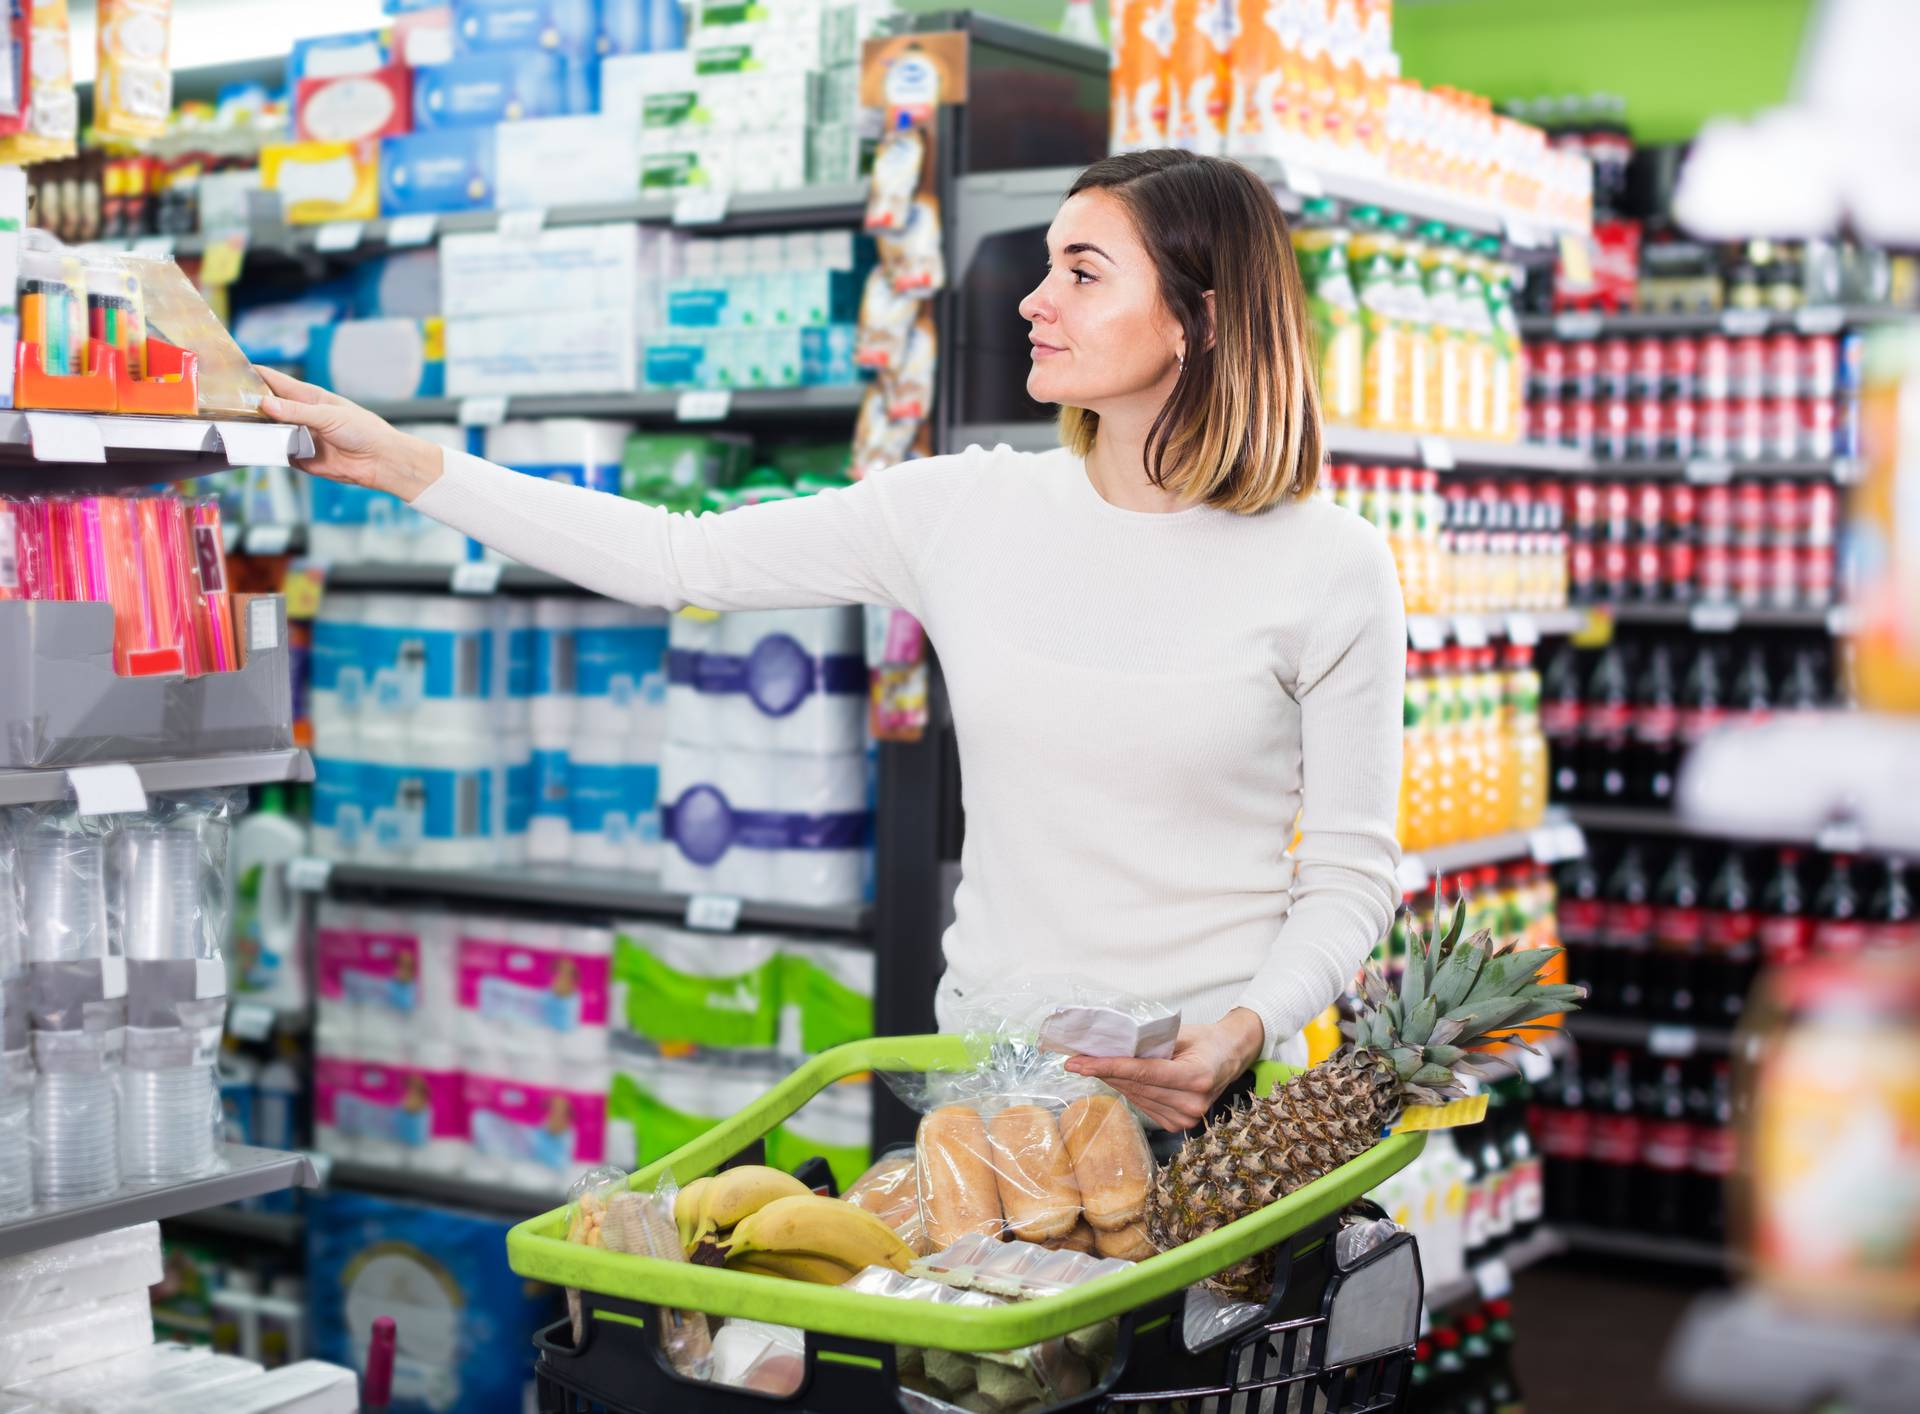 Girl customer looking at notes in shopping list